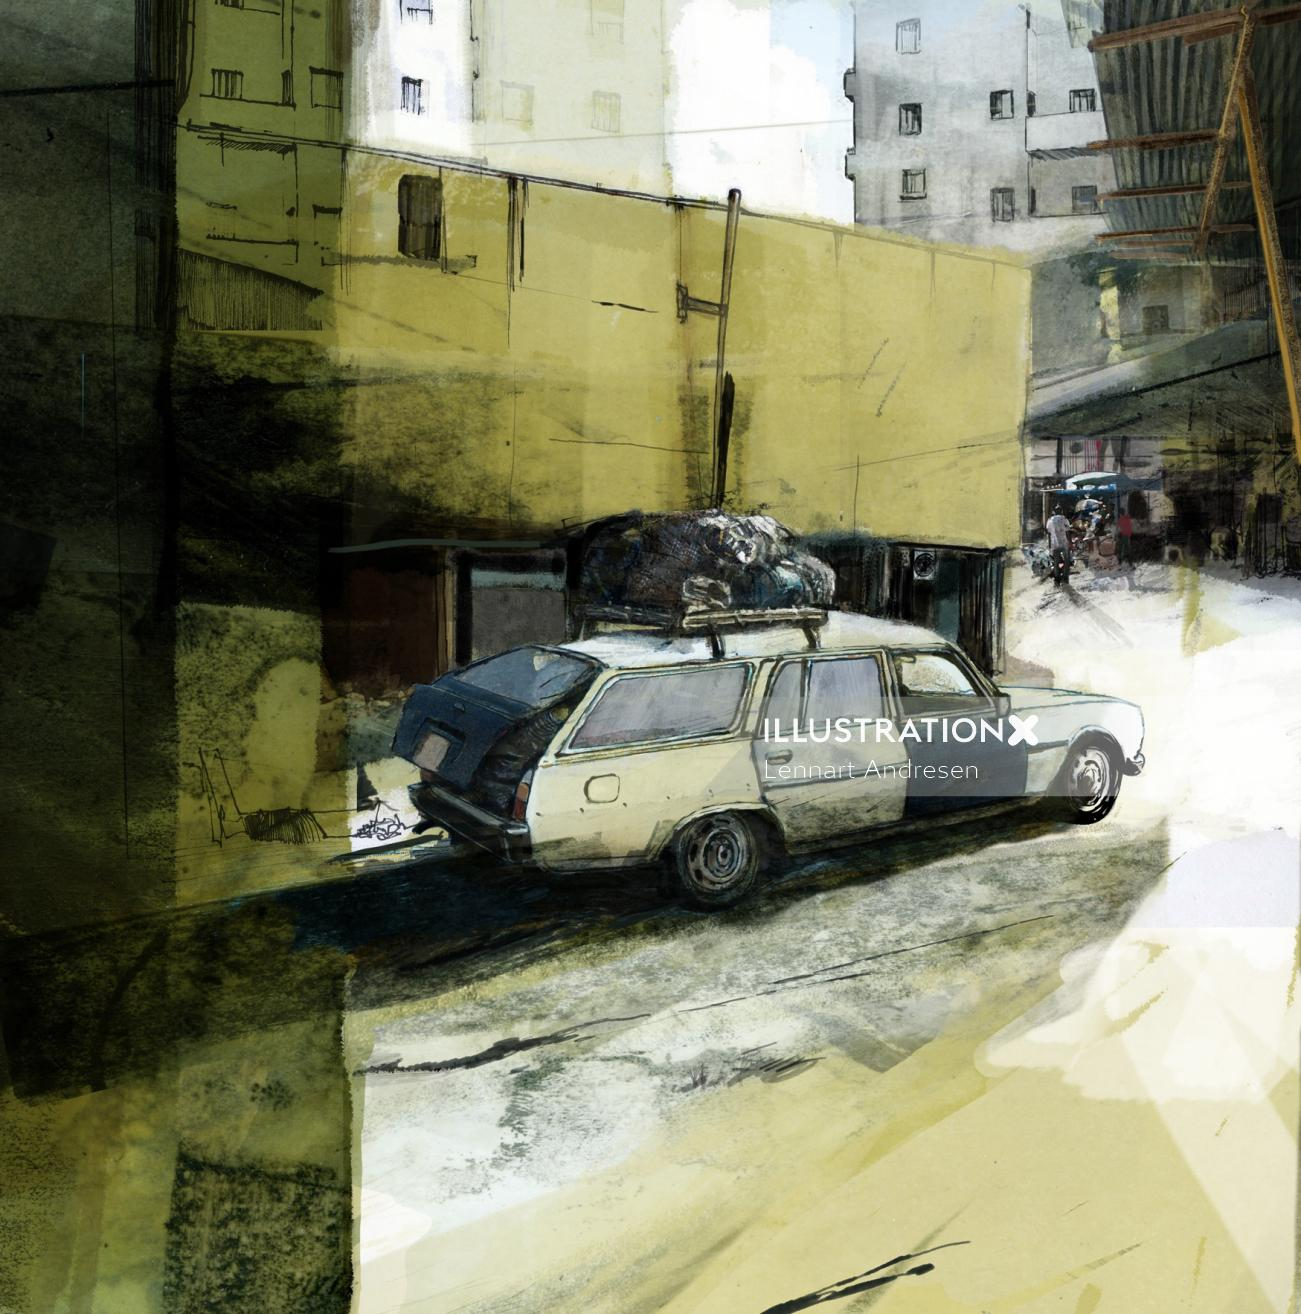 sketch of car in the old city